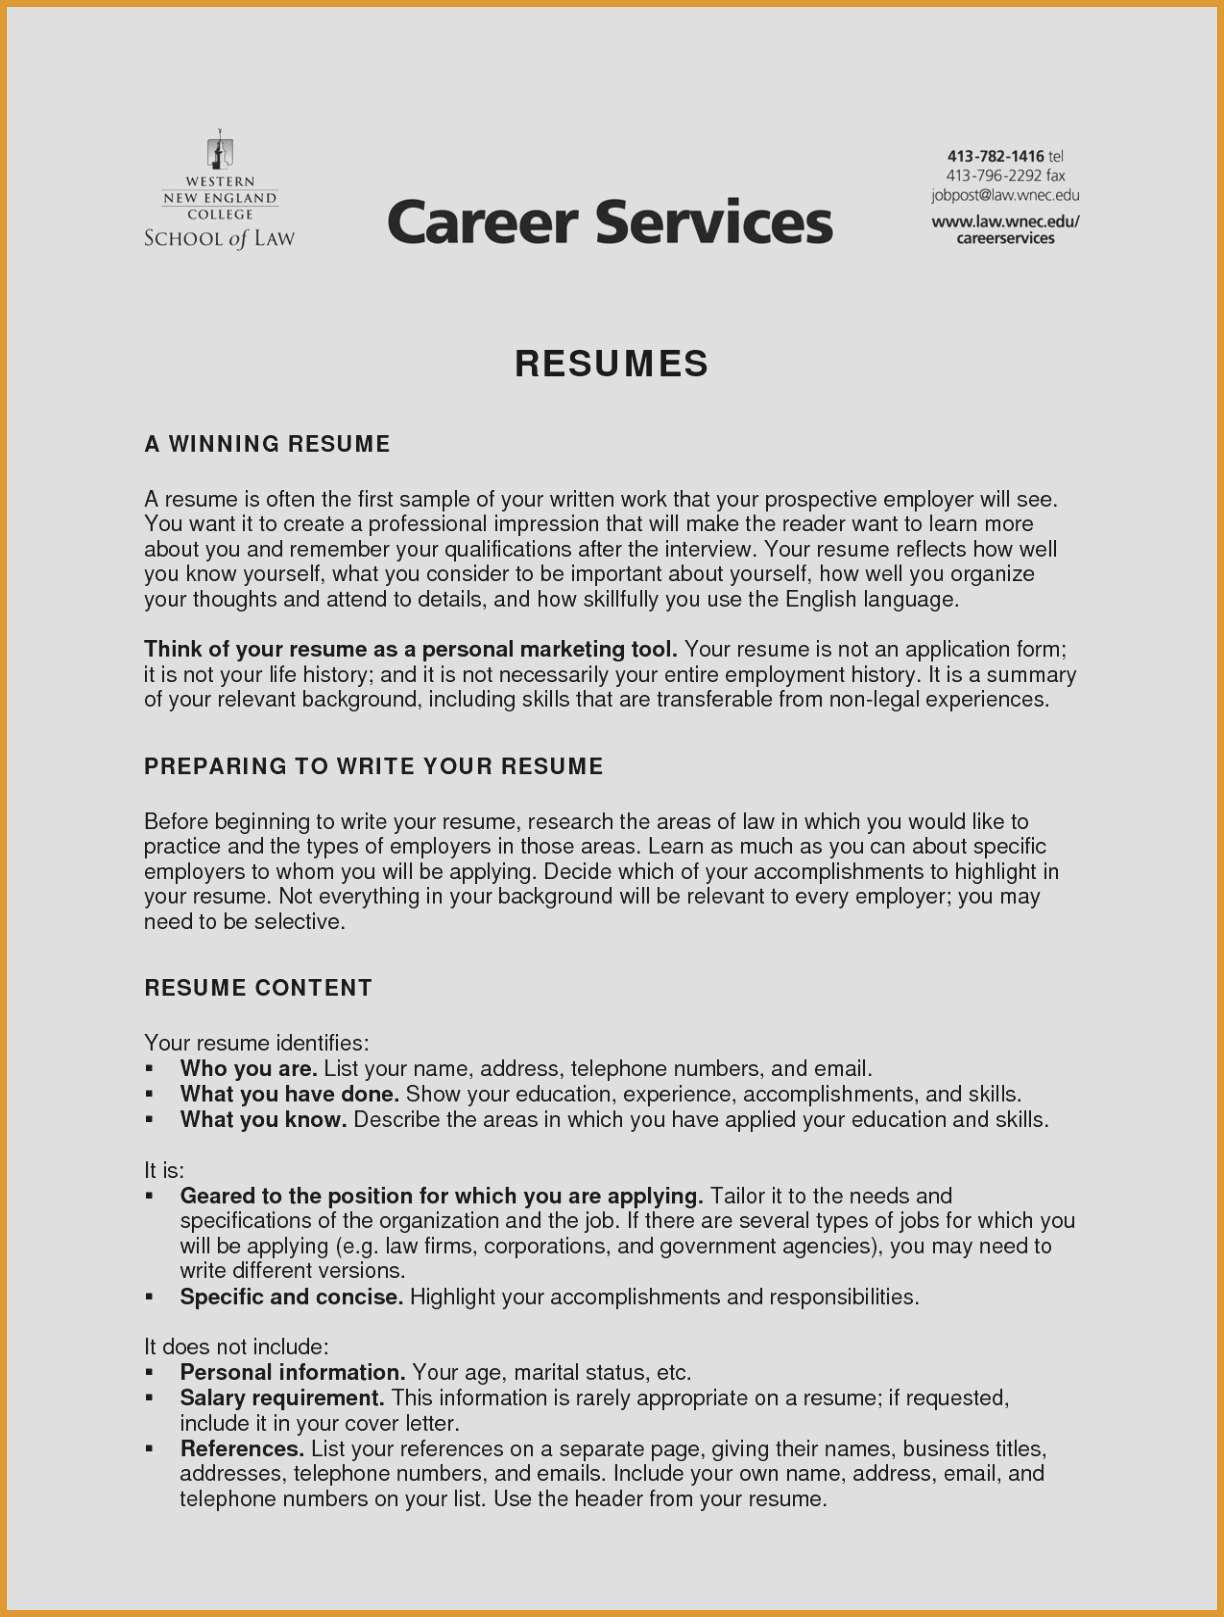 Proper Resume Cover Letter Proper Cover Letter Template Collection Letter Template Collection